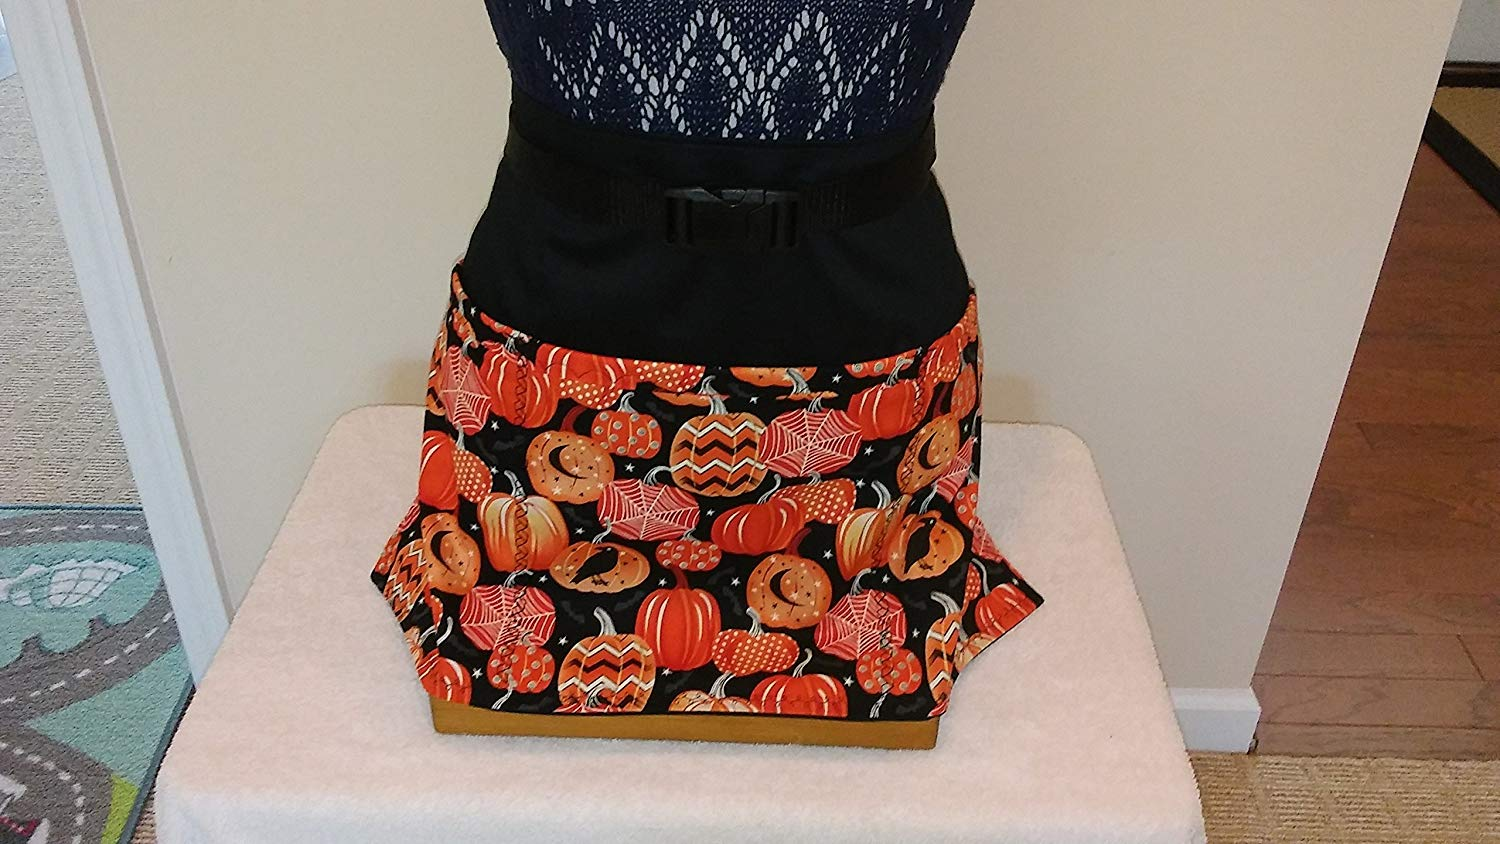 ADJUSTABLE NO - TIE APRON/Pumpkins that GLOW IN THE DARK/Halloween- Orange, black and White/3 Lined Pockets Waist Apron/One size fits most